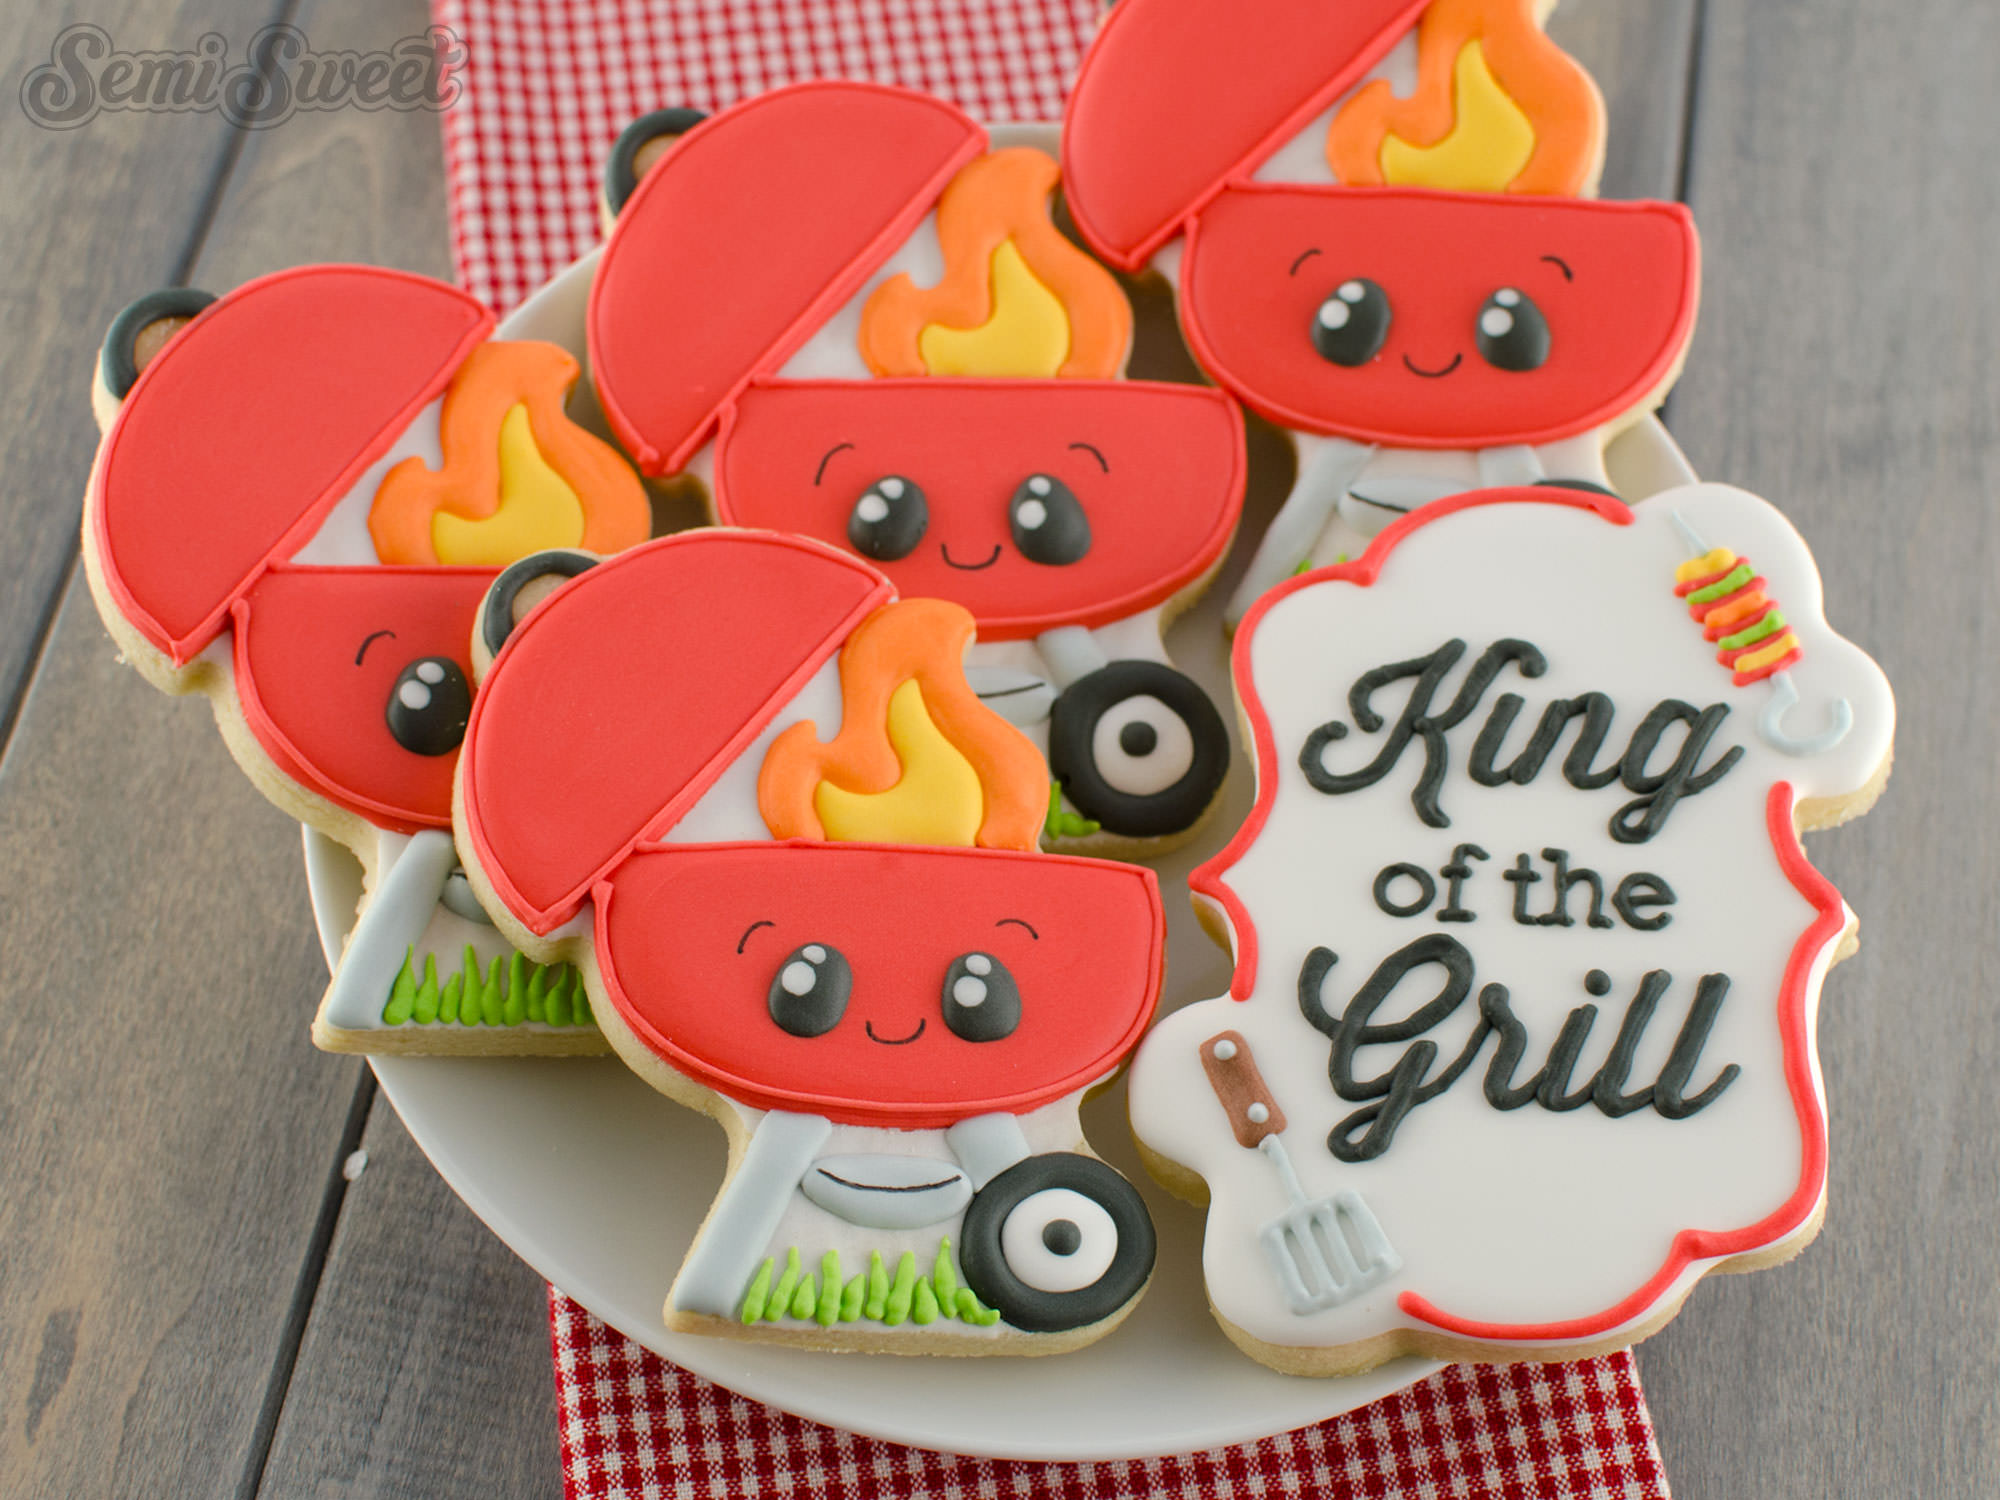 How to Make BBQ Grill Cookies